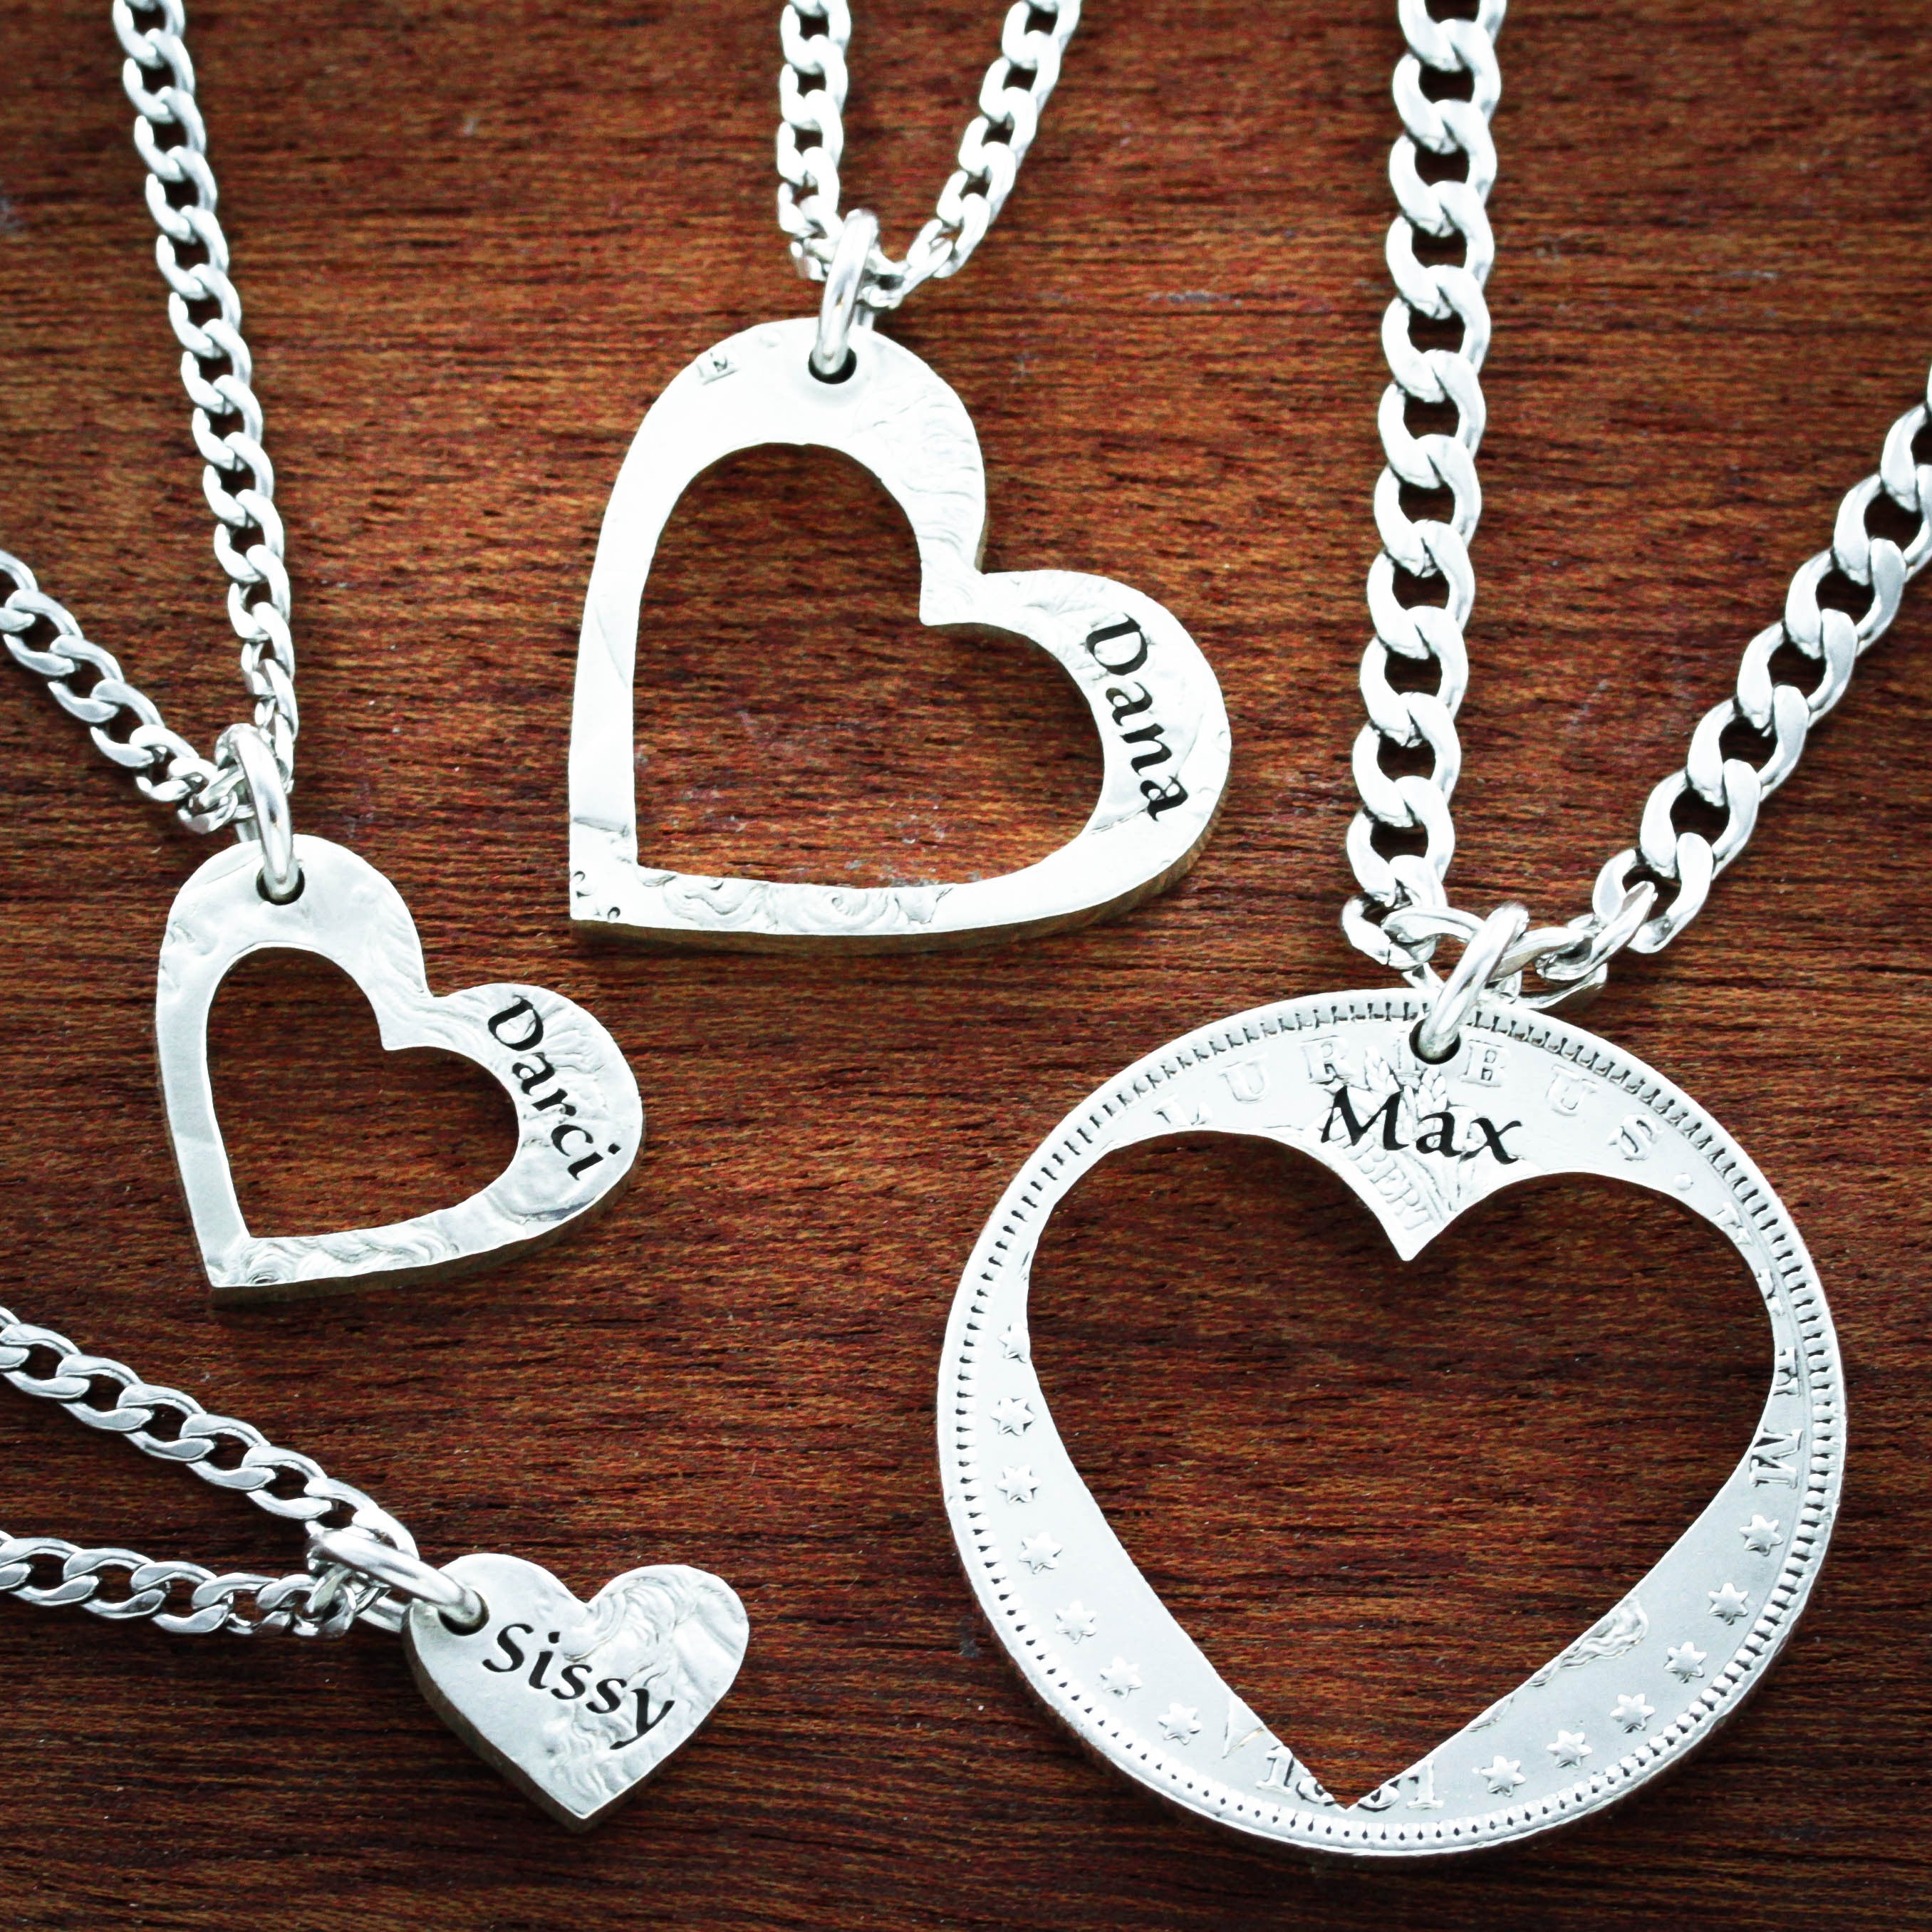 products necklaces cut names hand couples heart engraved of wolves copy initials coin make with us custom wolf chains a